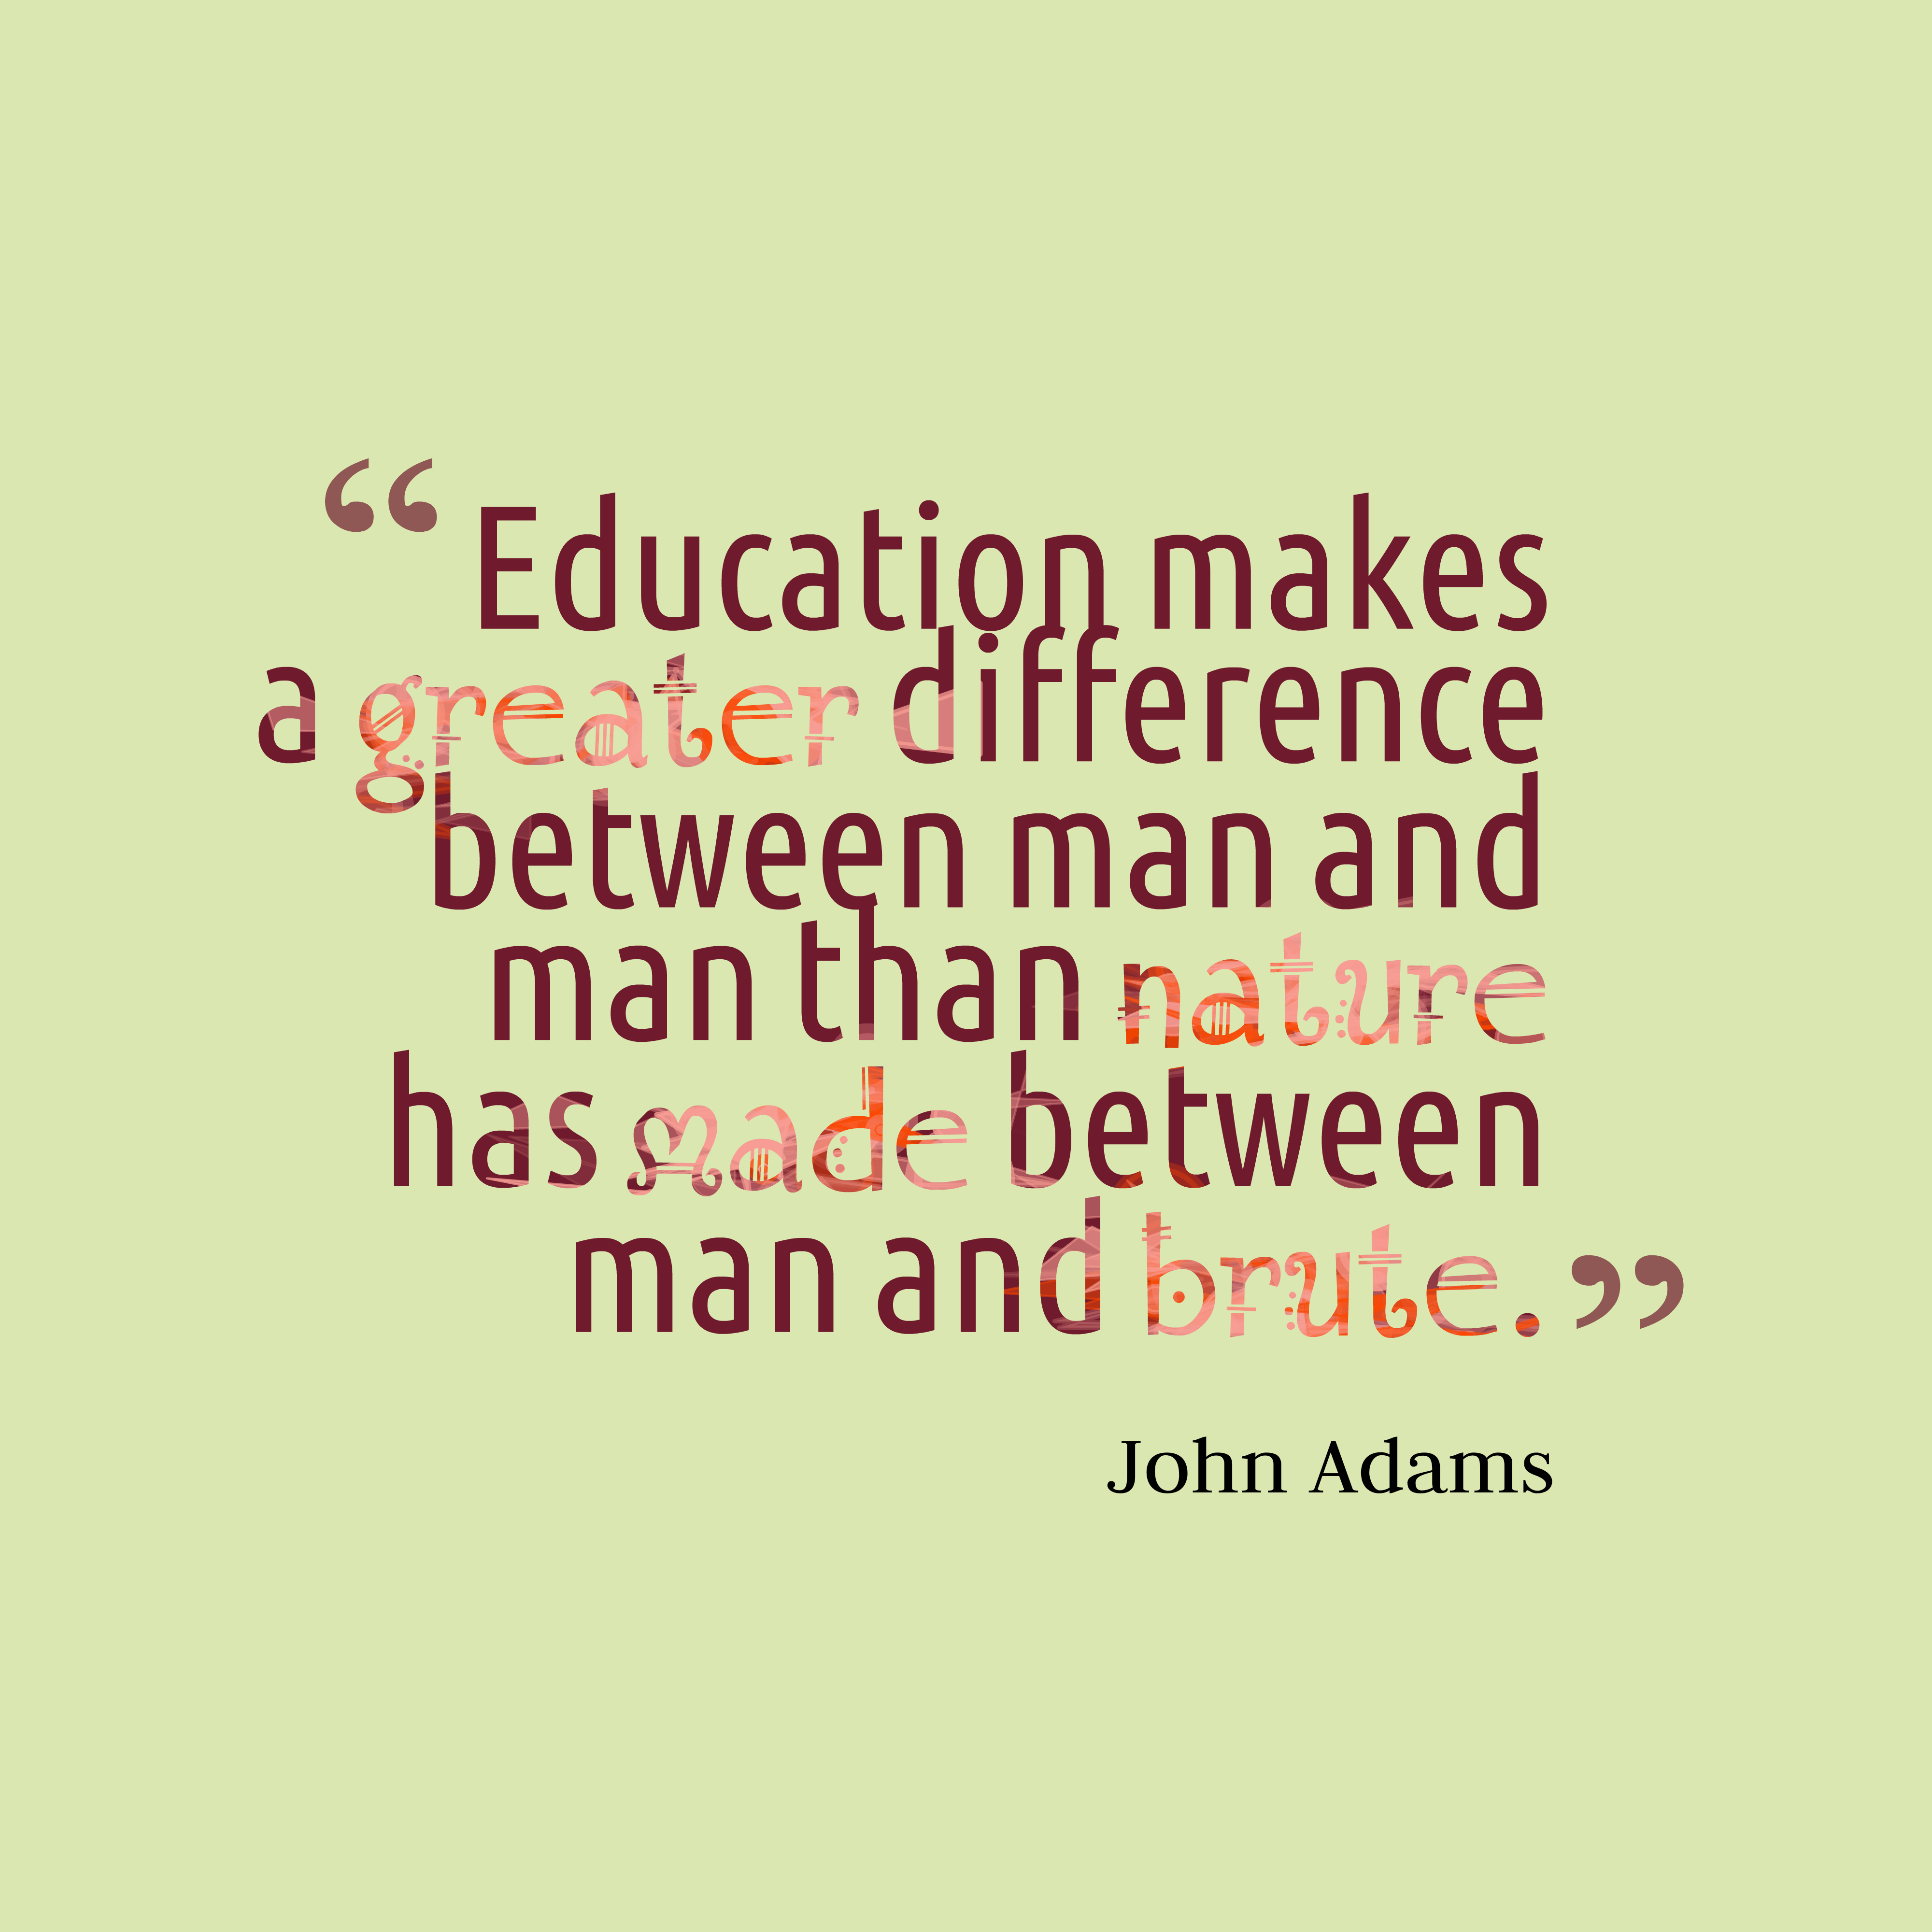 Quotes image of Education makes a greater difference between man and man than nature has made between man and brute.